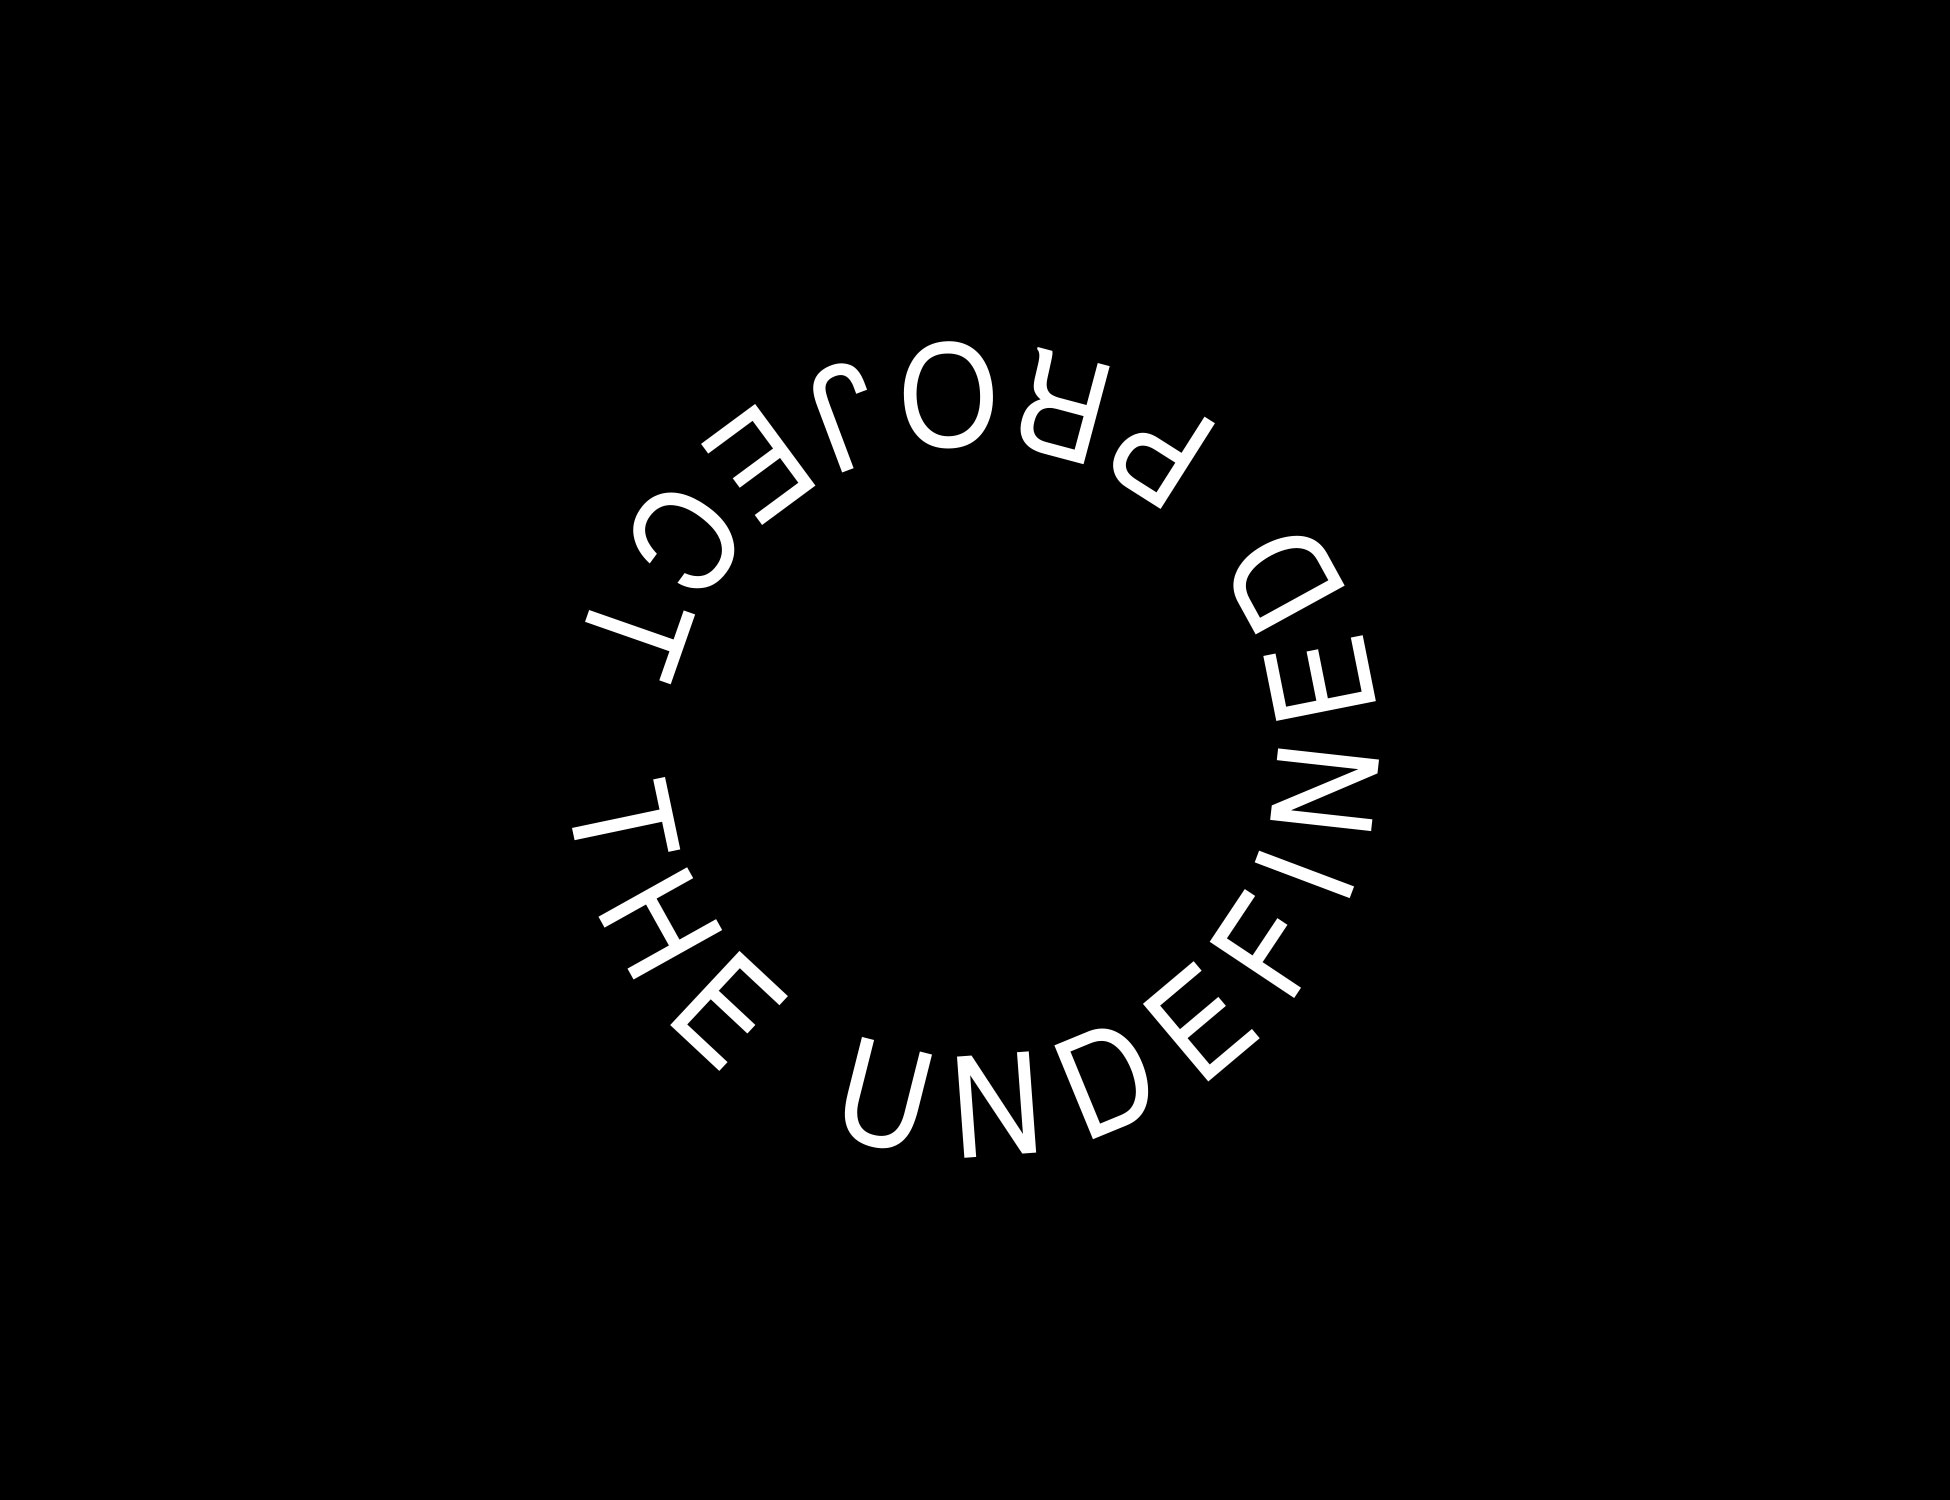 The undefined project